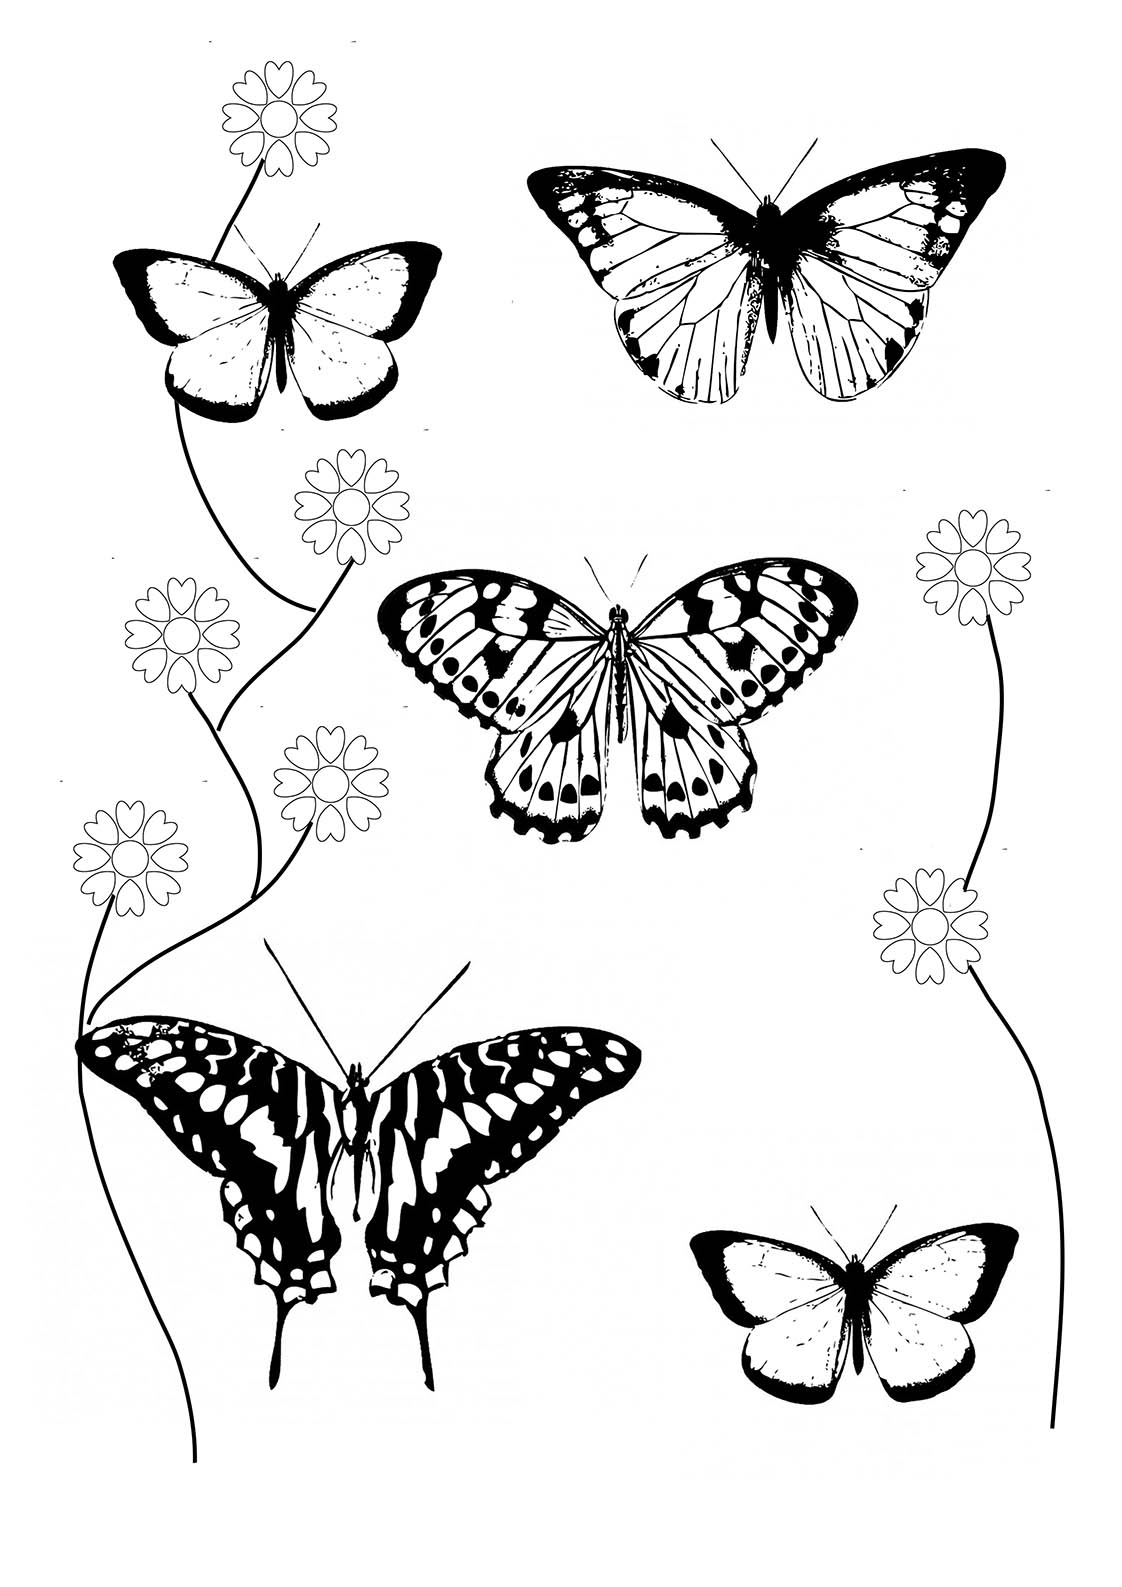 600 Coloring Pages With A Butterfly , Free HD Download